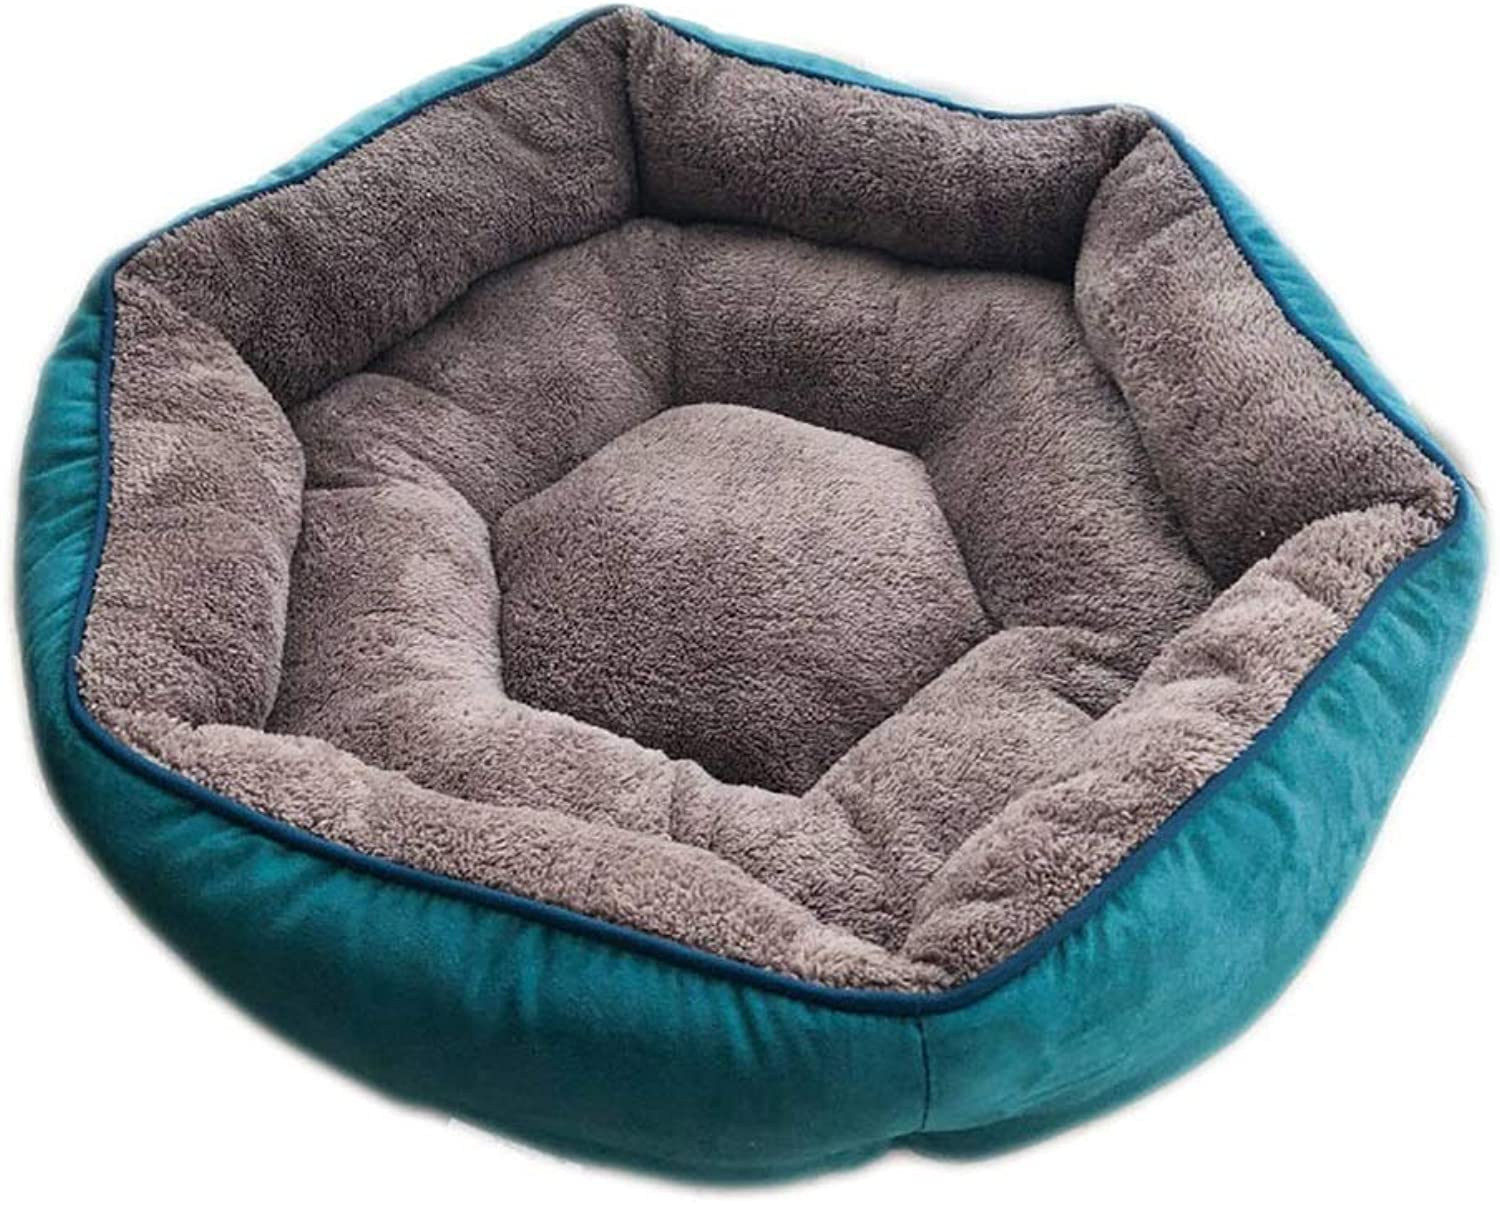 LHY Warm Doghouse, With Pillow Blanket Snd Bed Washable Four Seasons For Small Medium Dogs, Dog House, Dog Bed